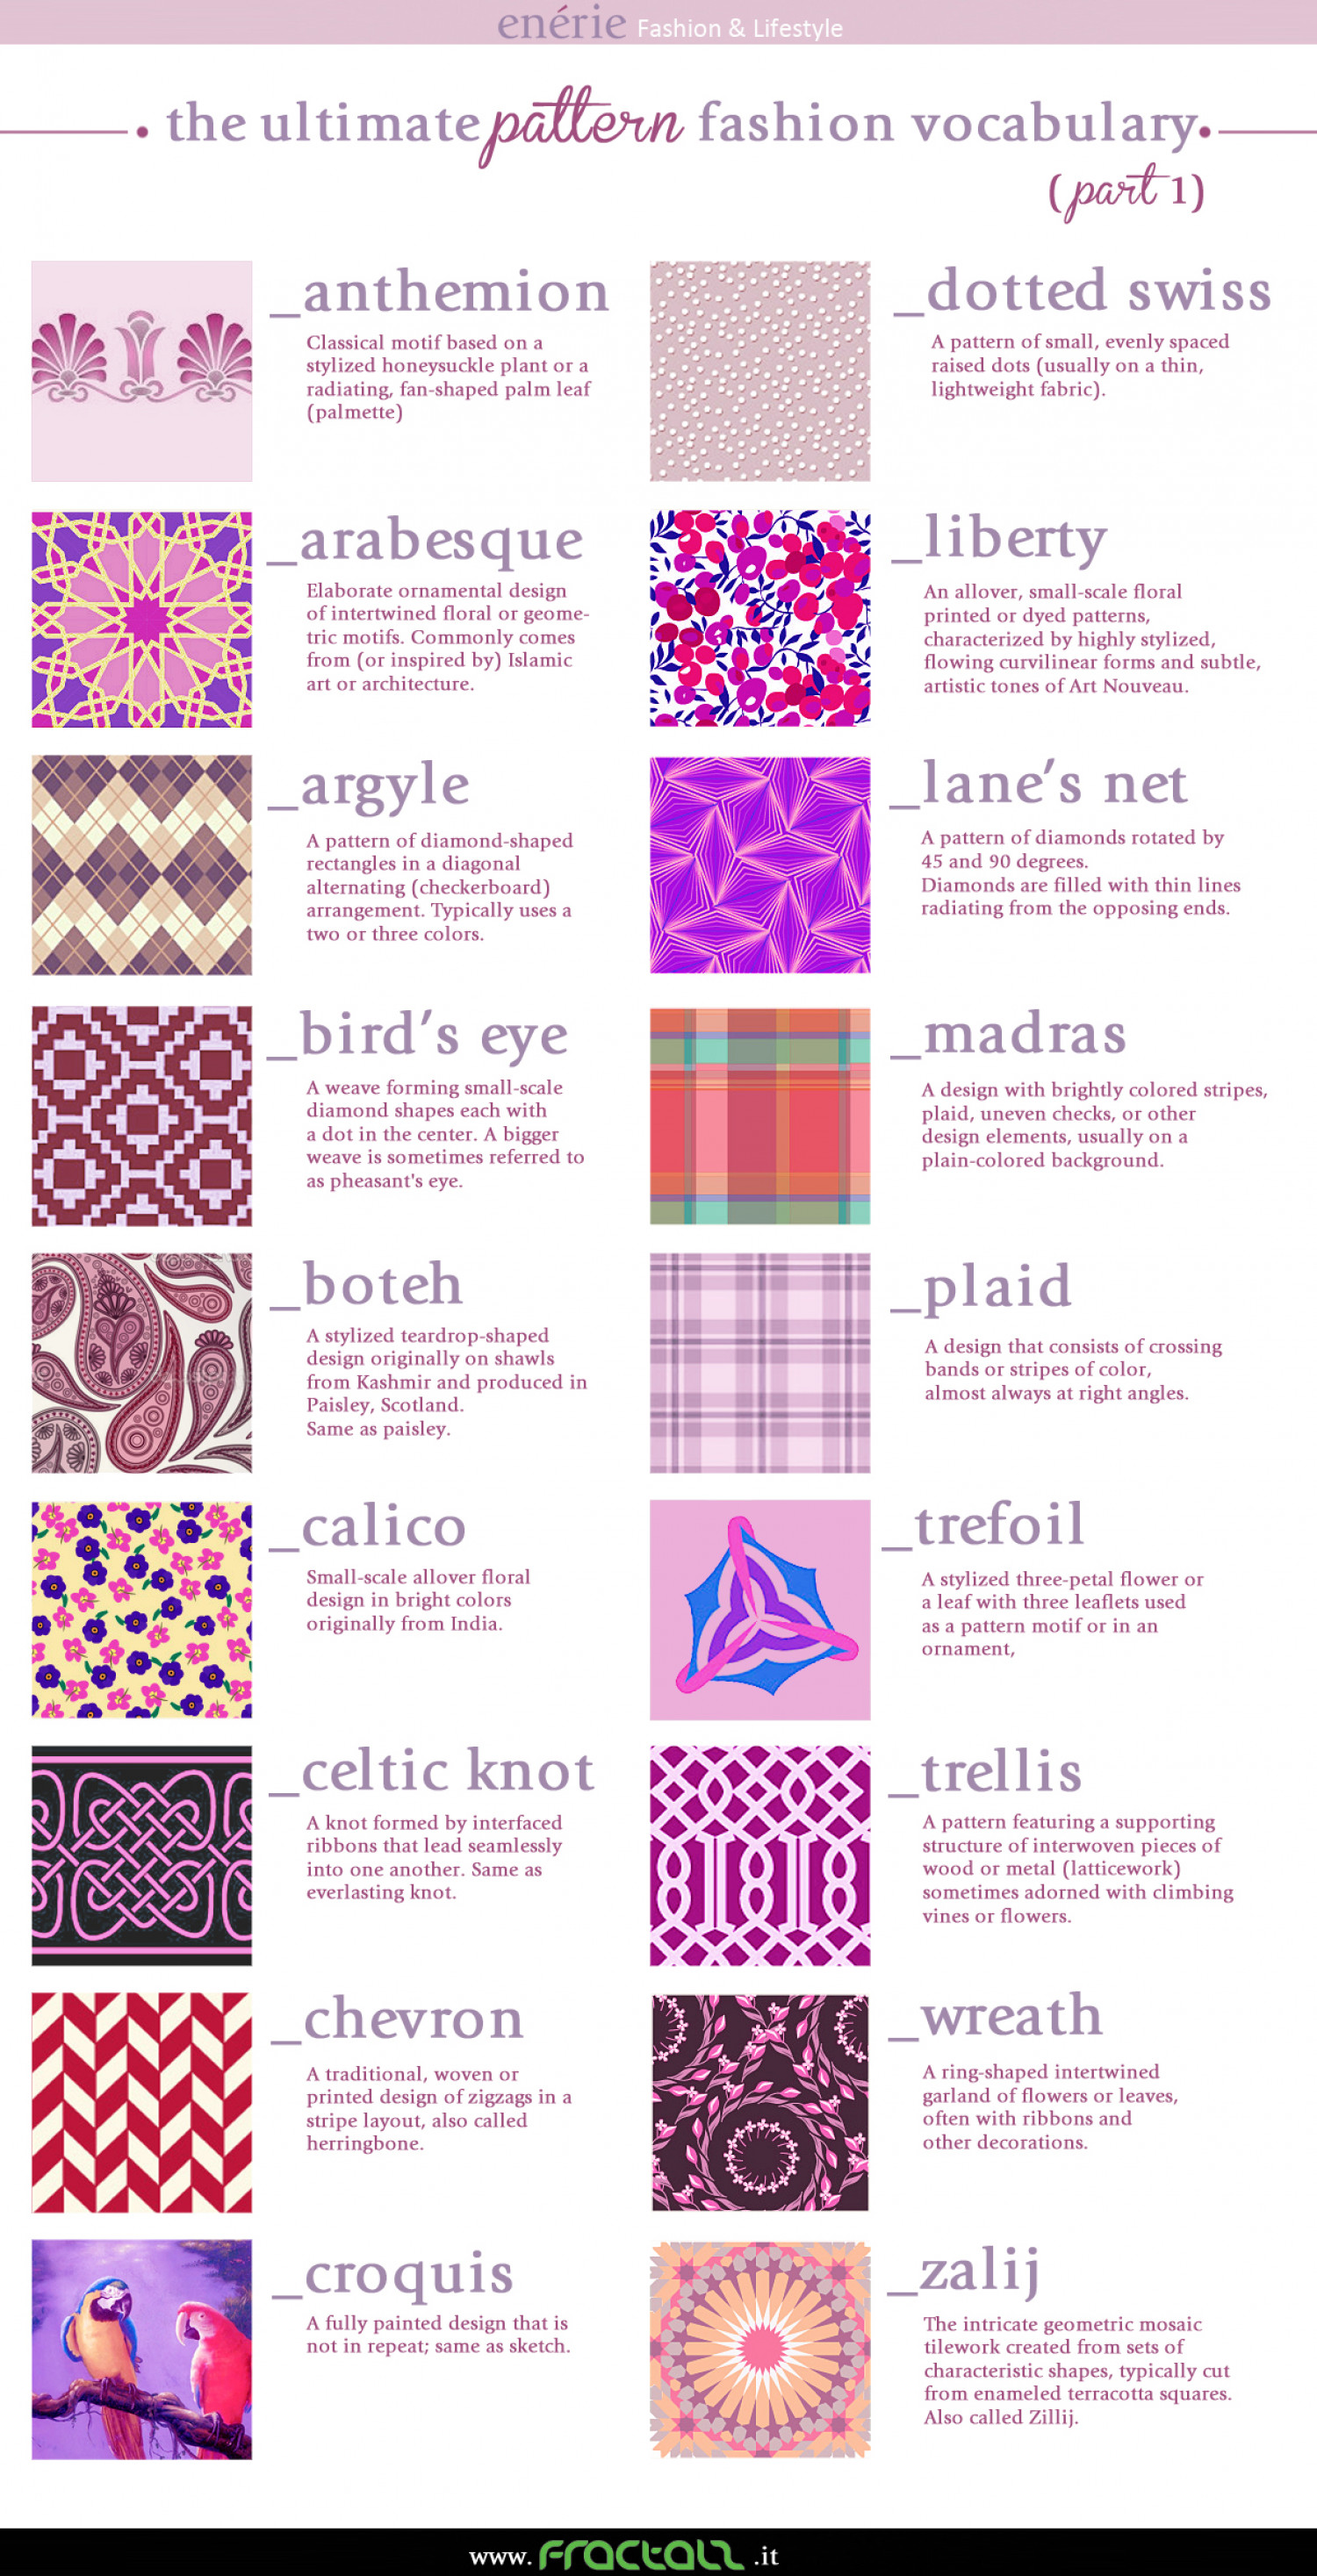 The Ultimate Pattern Fashion Vocabulary